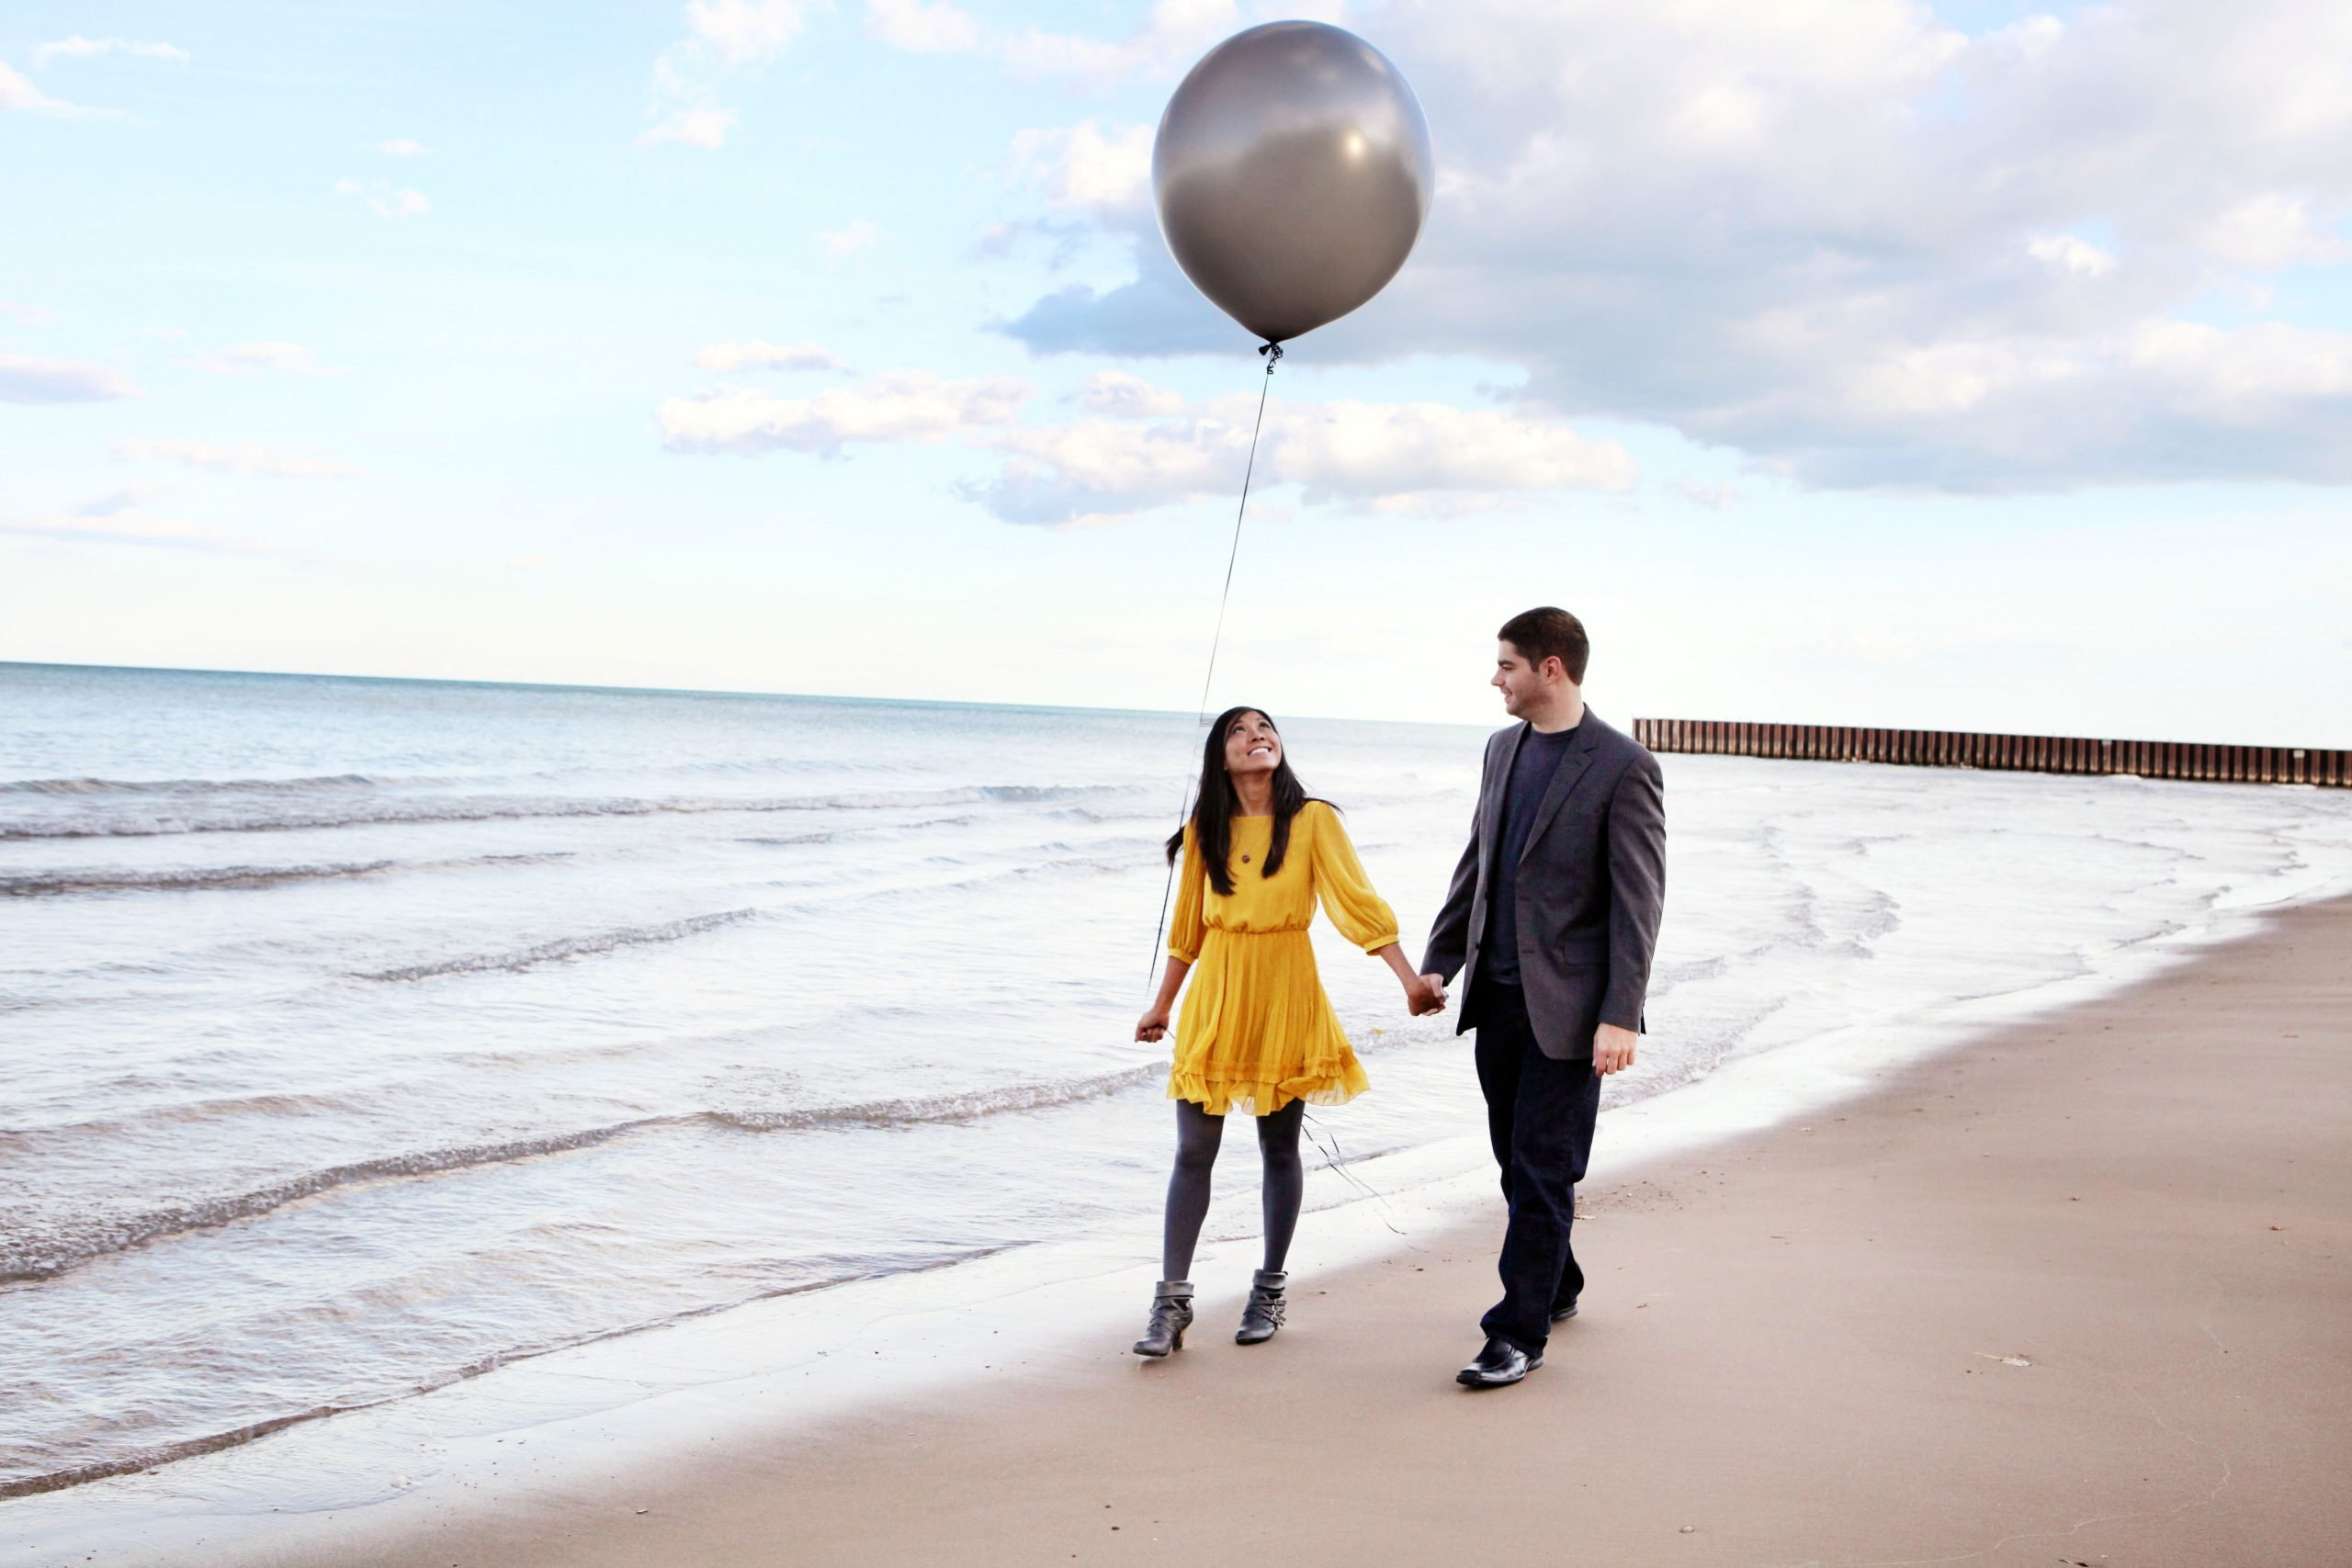 Balloon Beach Evanston Engagement Photography